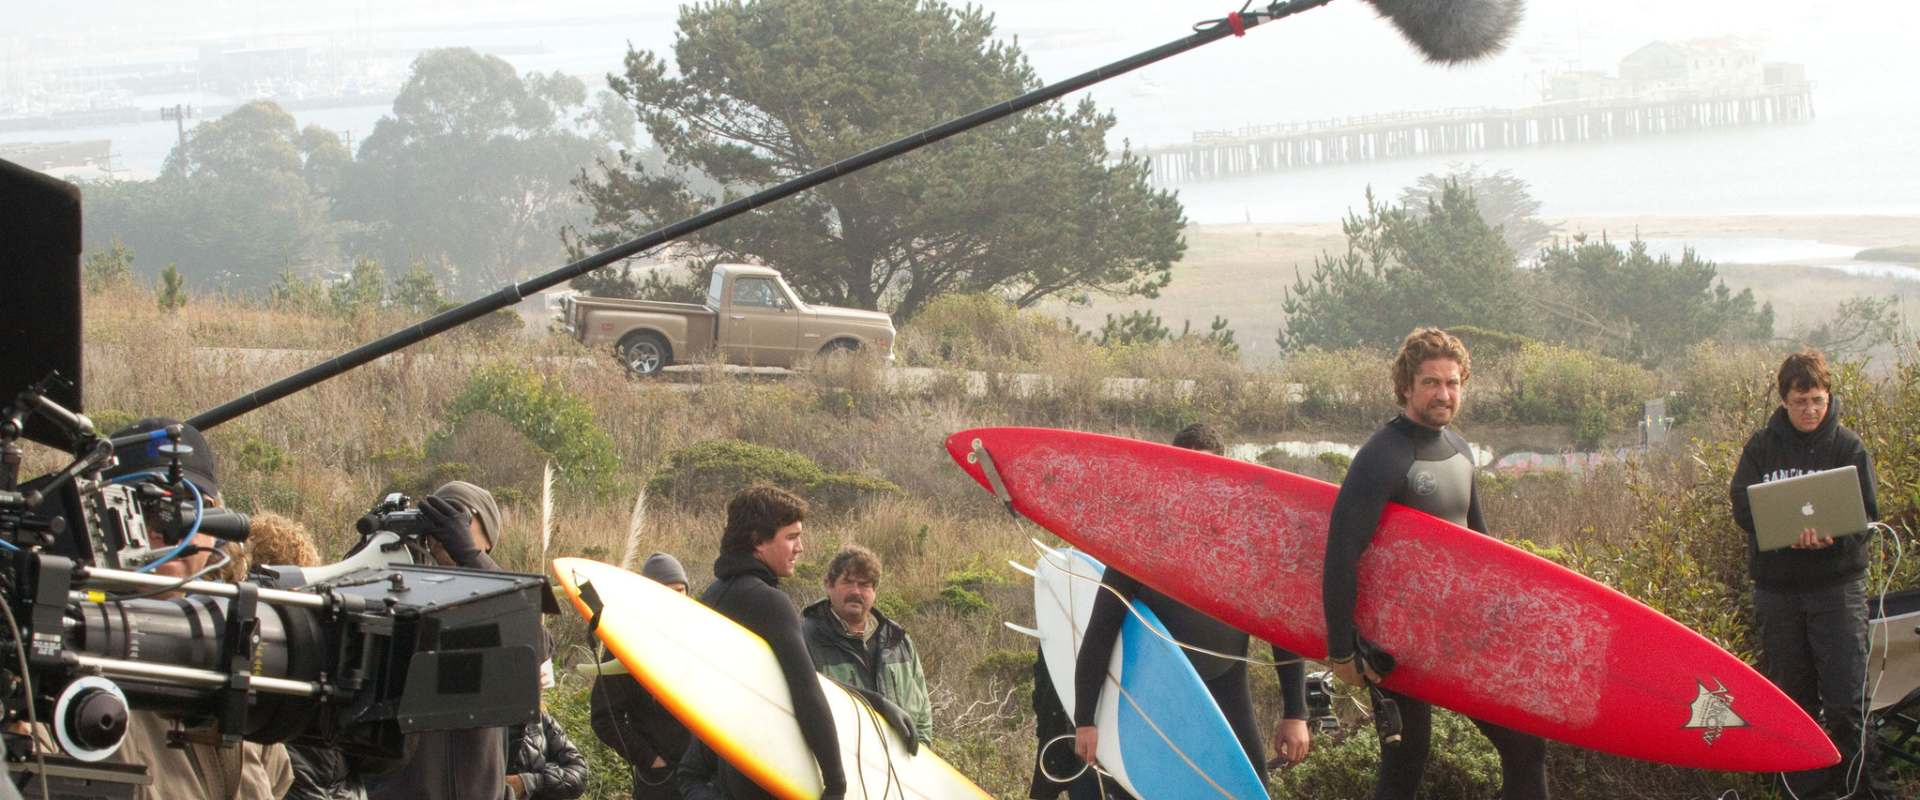 Chasing Mavericks background 1